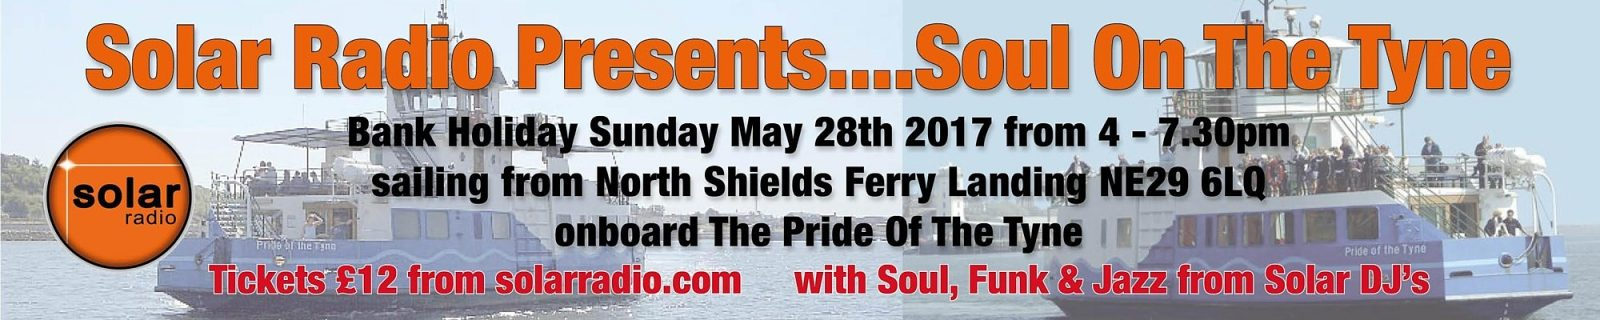 Solar Radio Presents....Soul On The Tyne